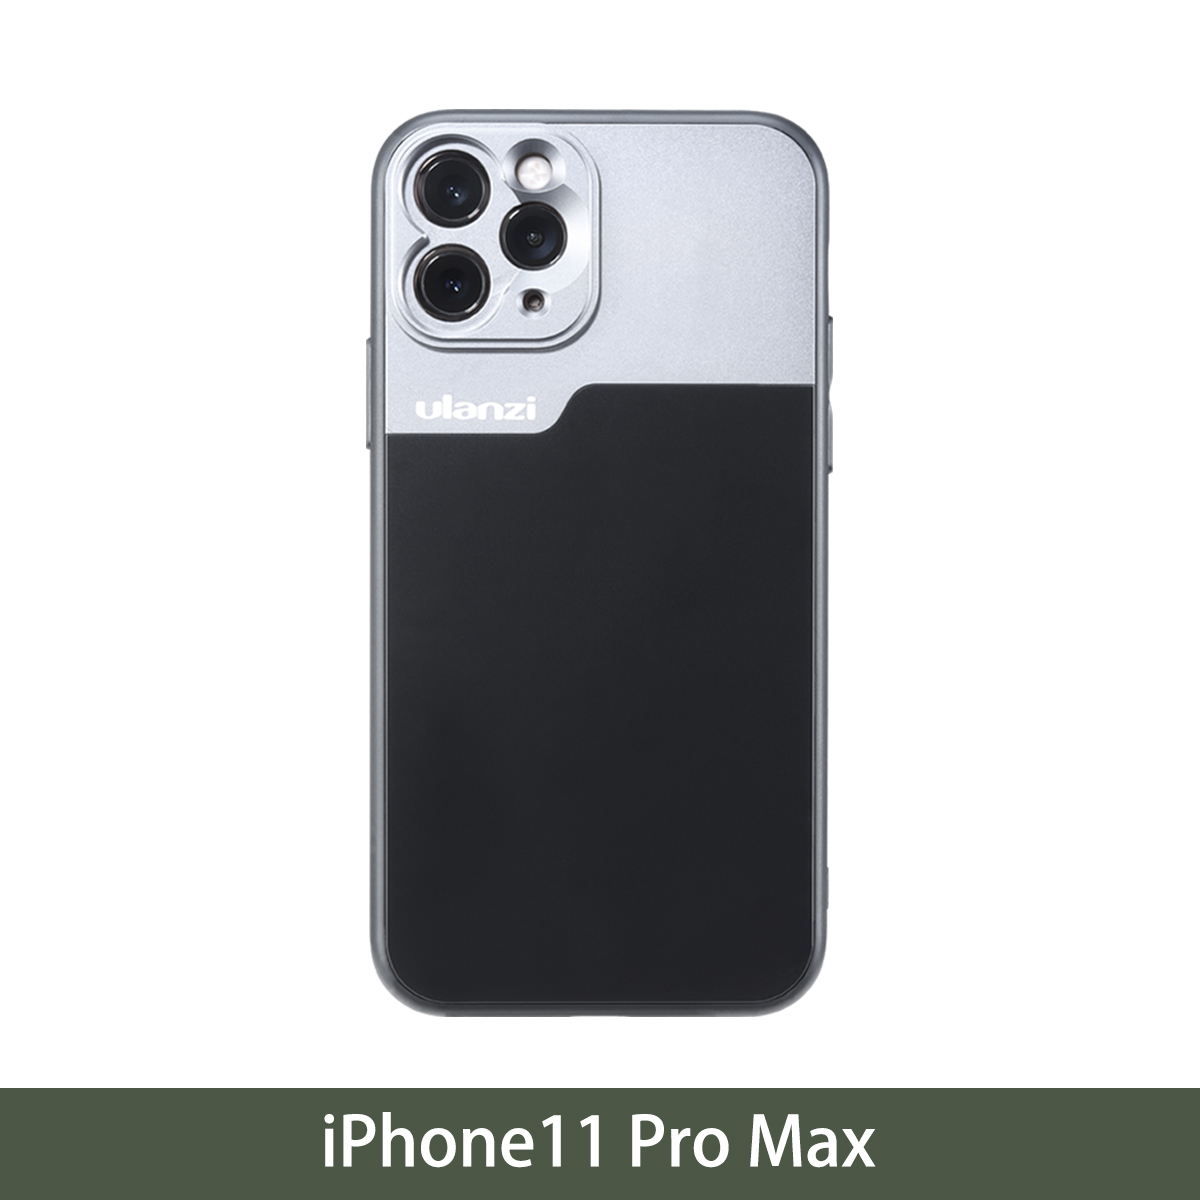 17mm Thread Phone Case for iPhone 11/11 Pro/11 Pro Max Anamorphic Lens Protect Smartphone Shakeproof Solid Cover For iPhone11 Pro Max